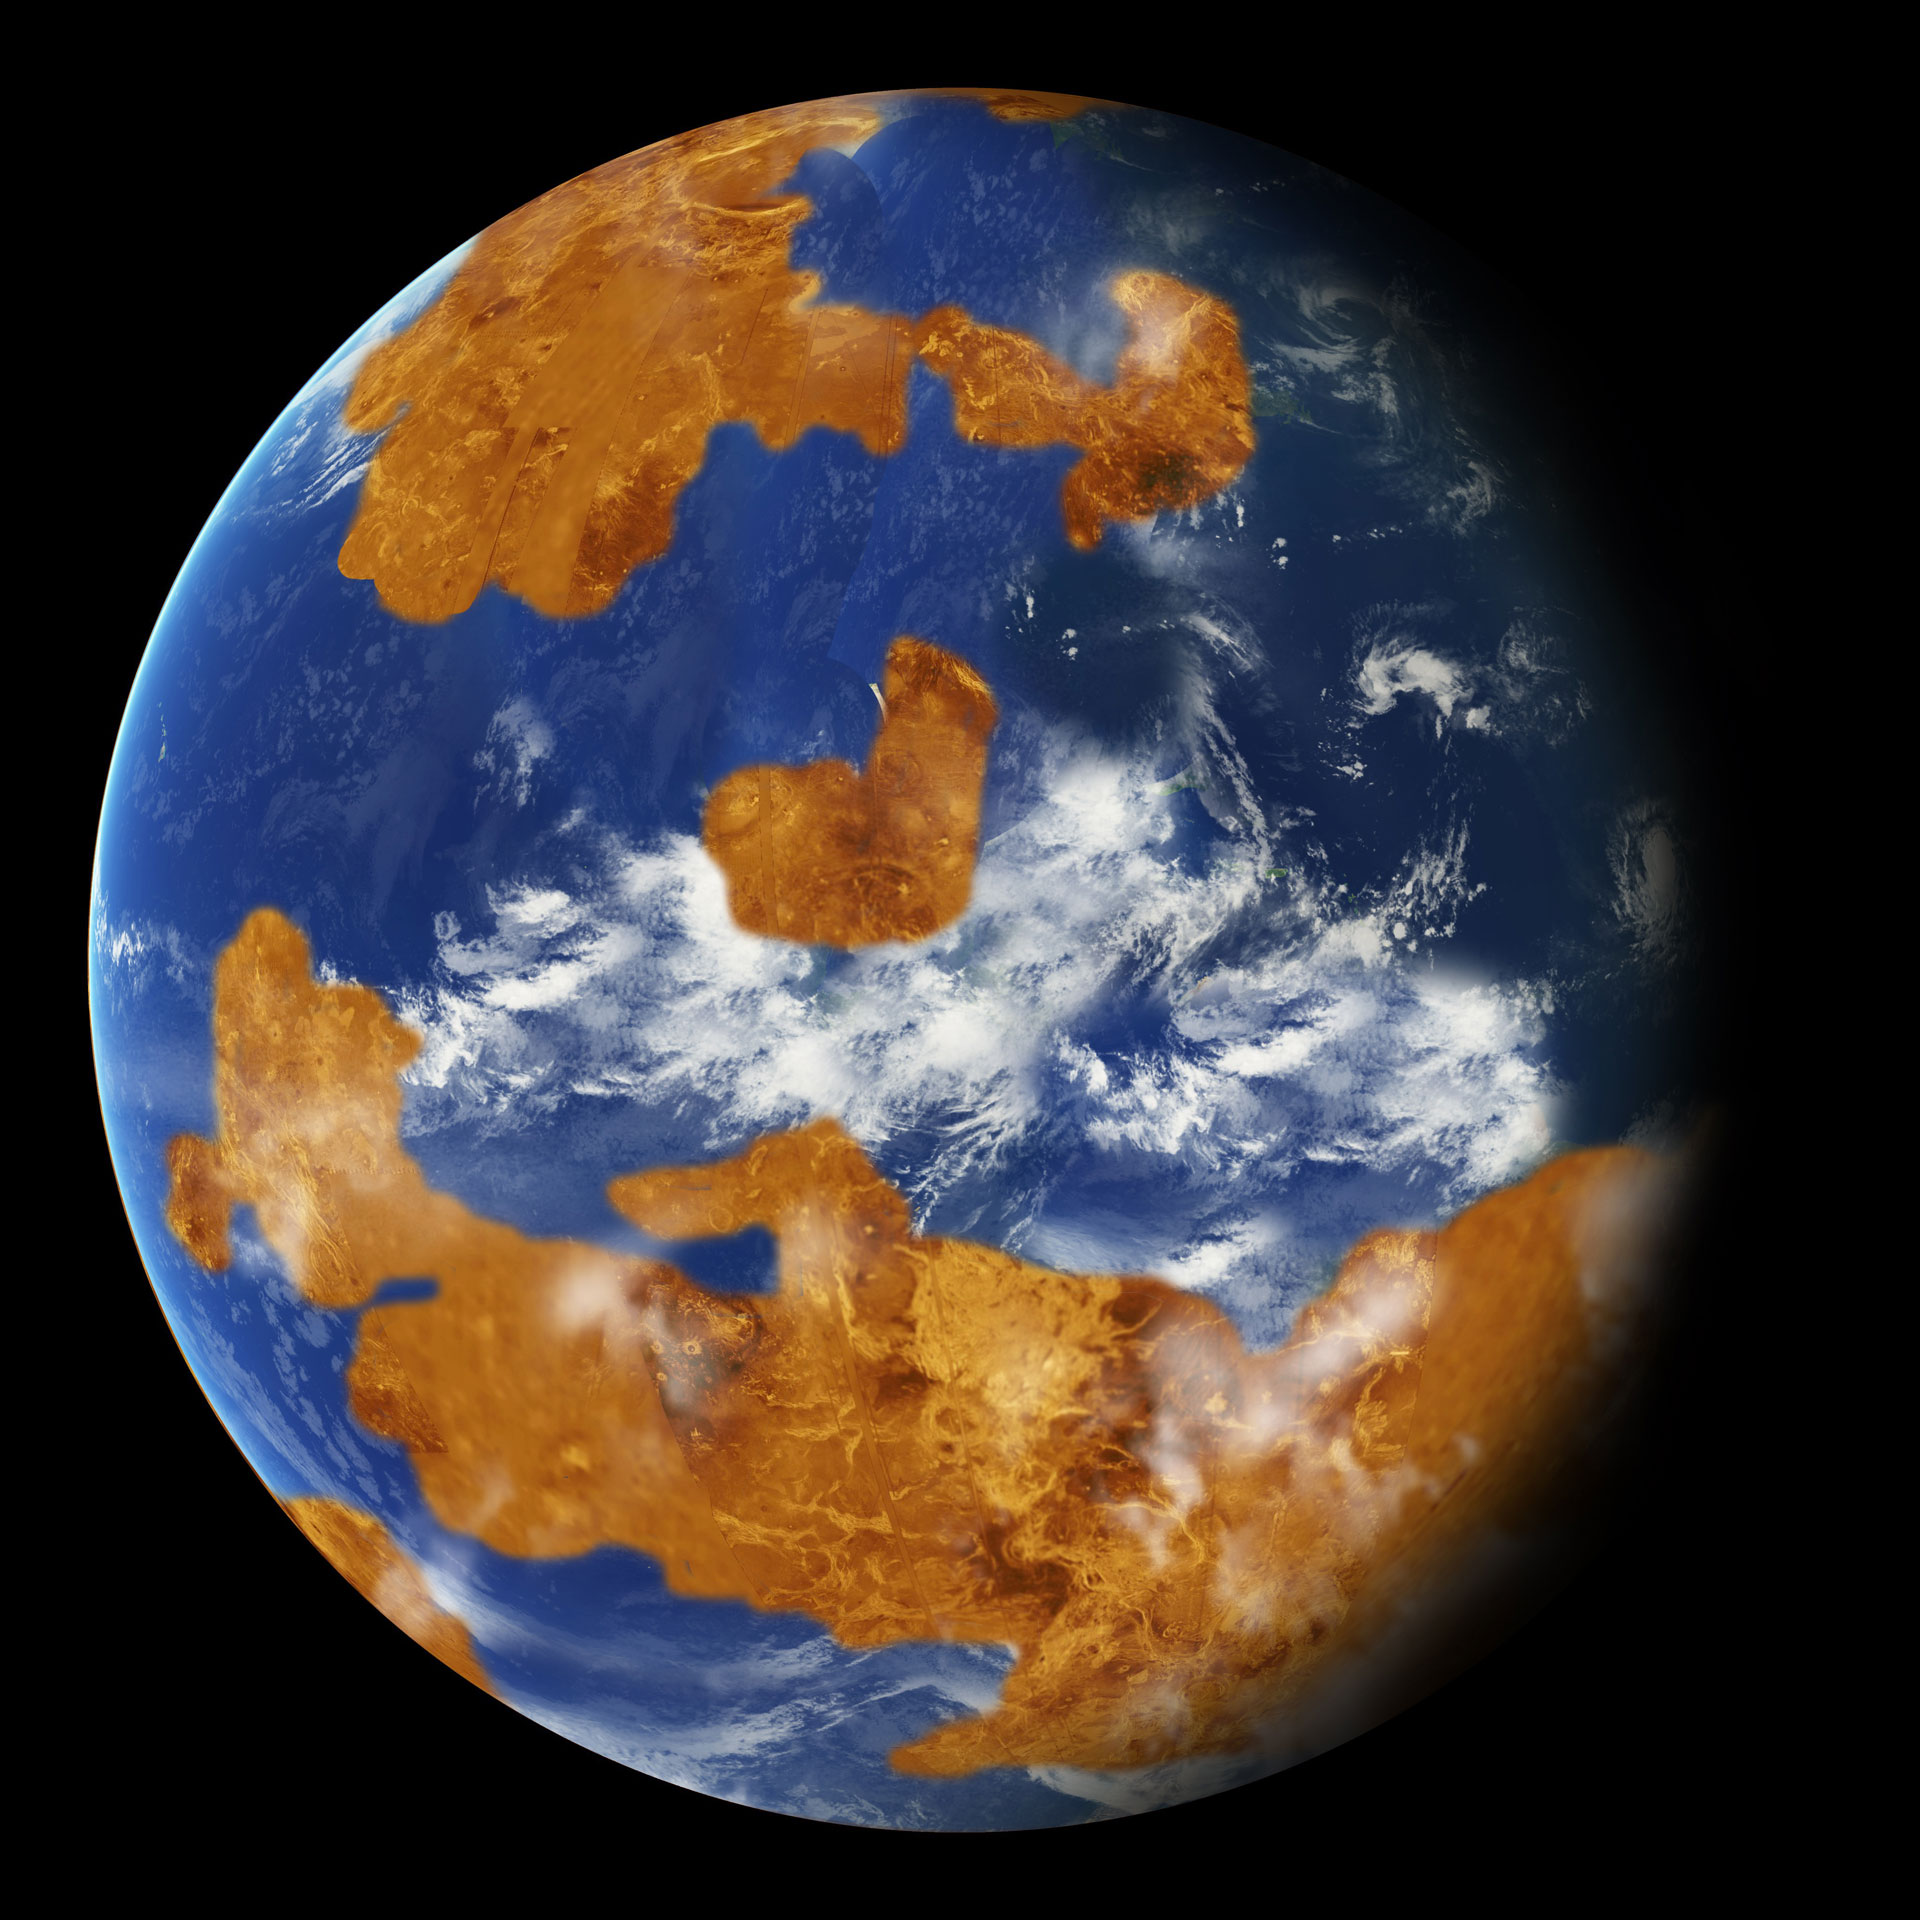 New Research From NASA Suggests Venus May Have Been Habitable